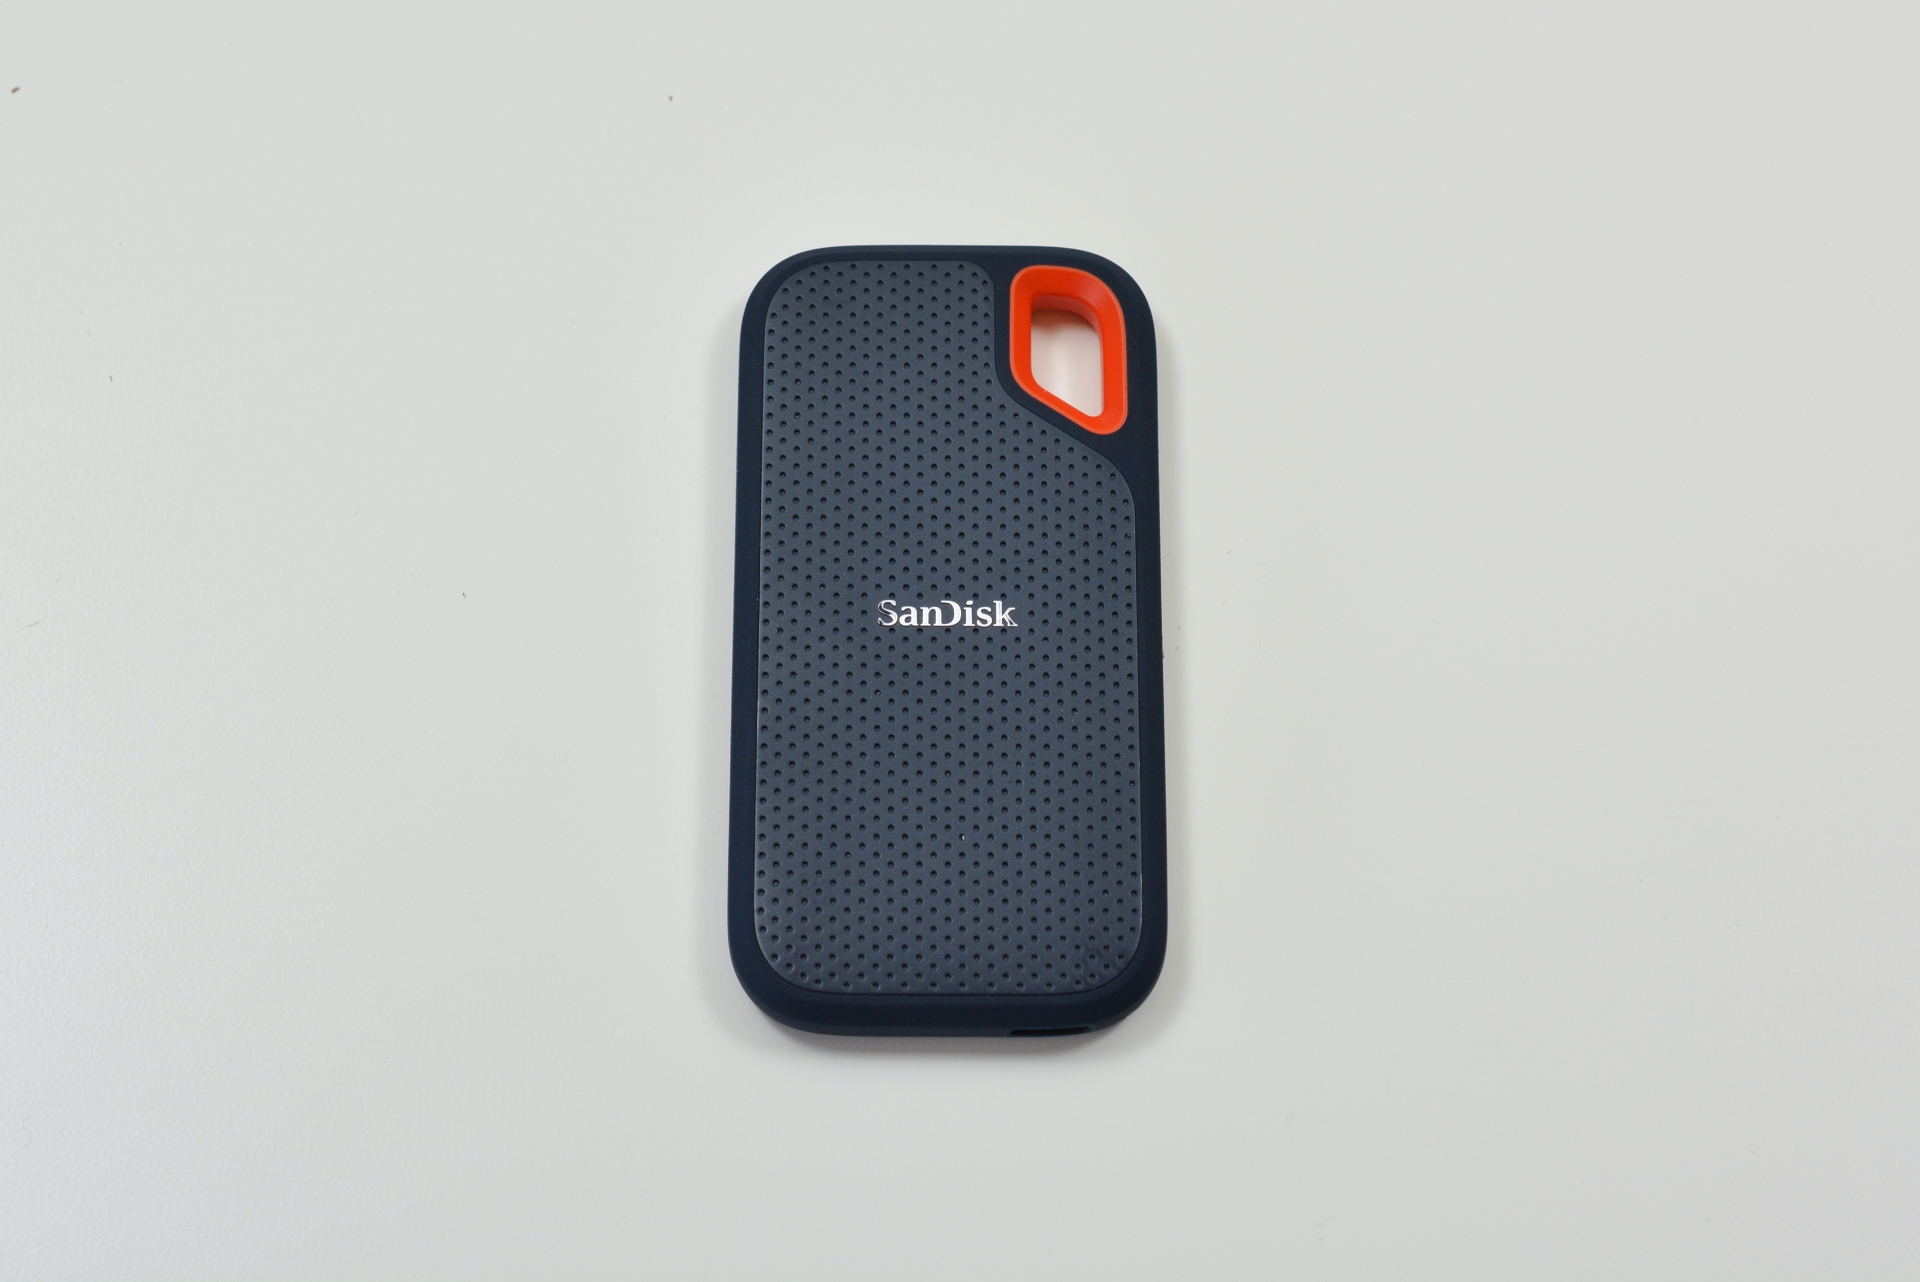 The SanDisk Extreme portable SSD.